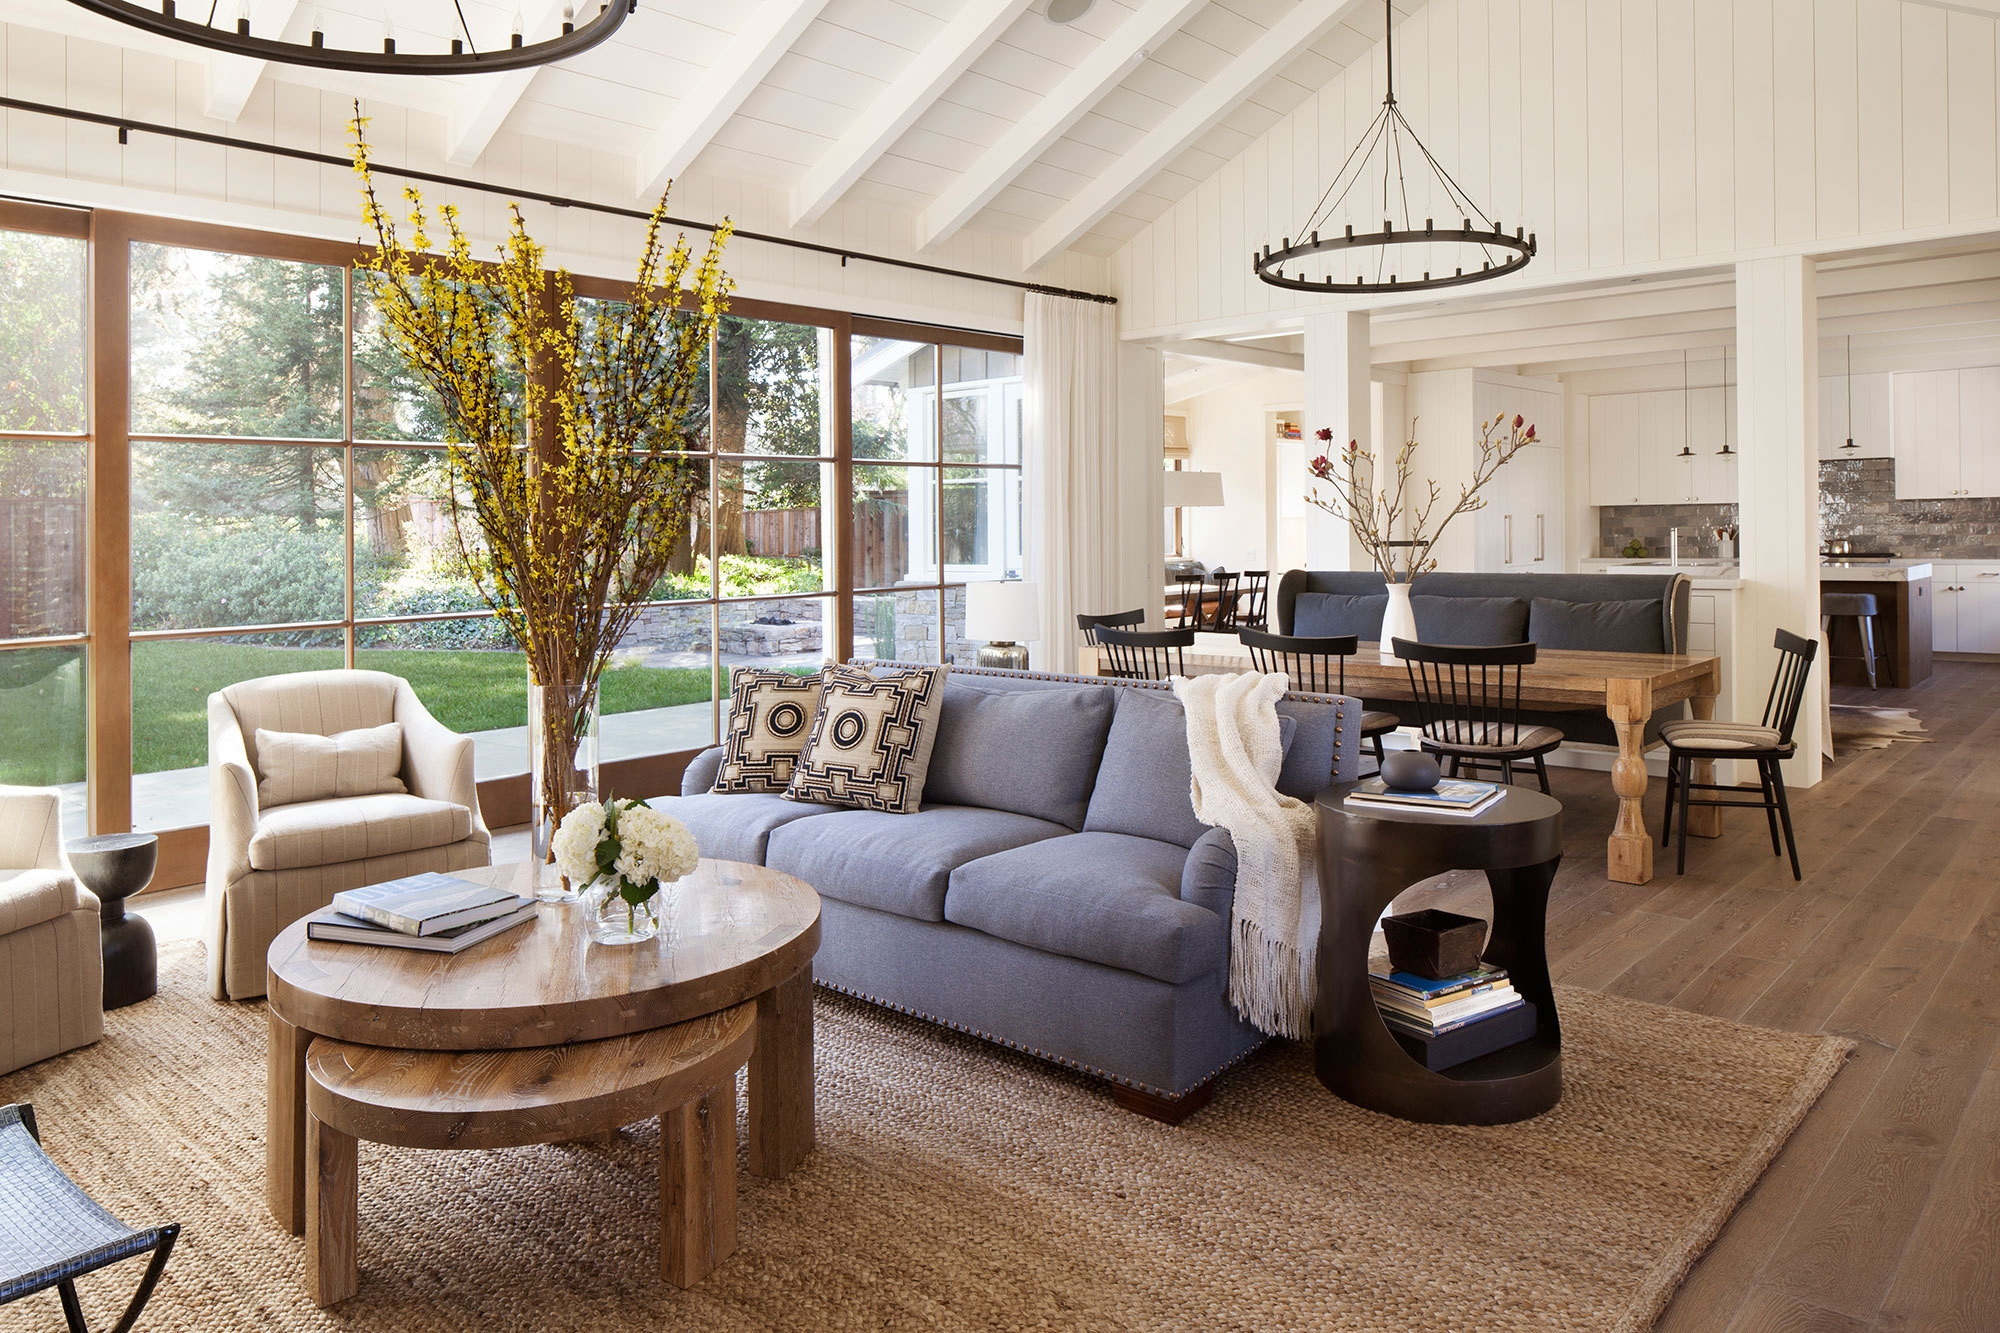 A Lake House Living Room living room A Lake House Living Room A Lake House Living Room11